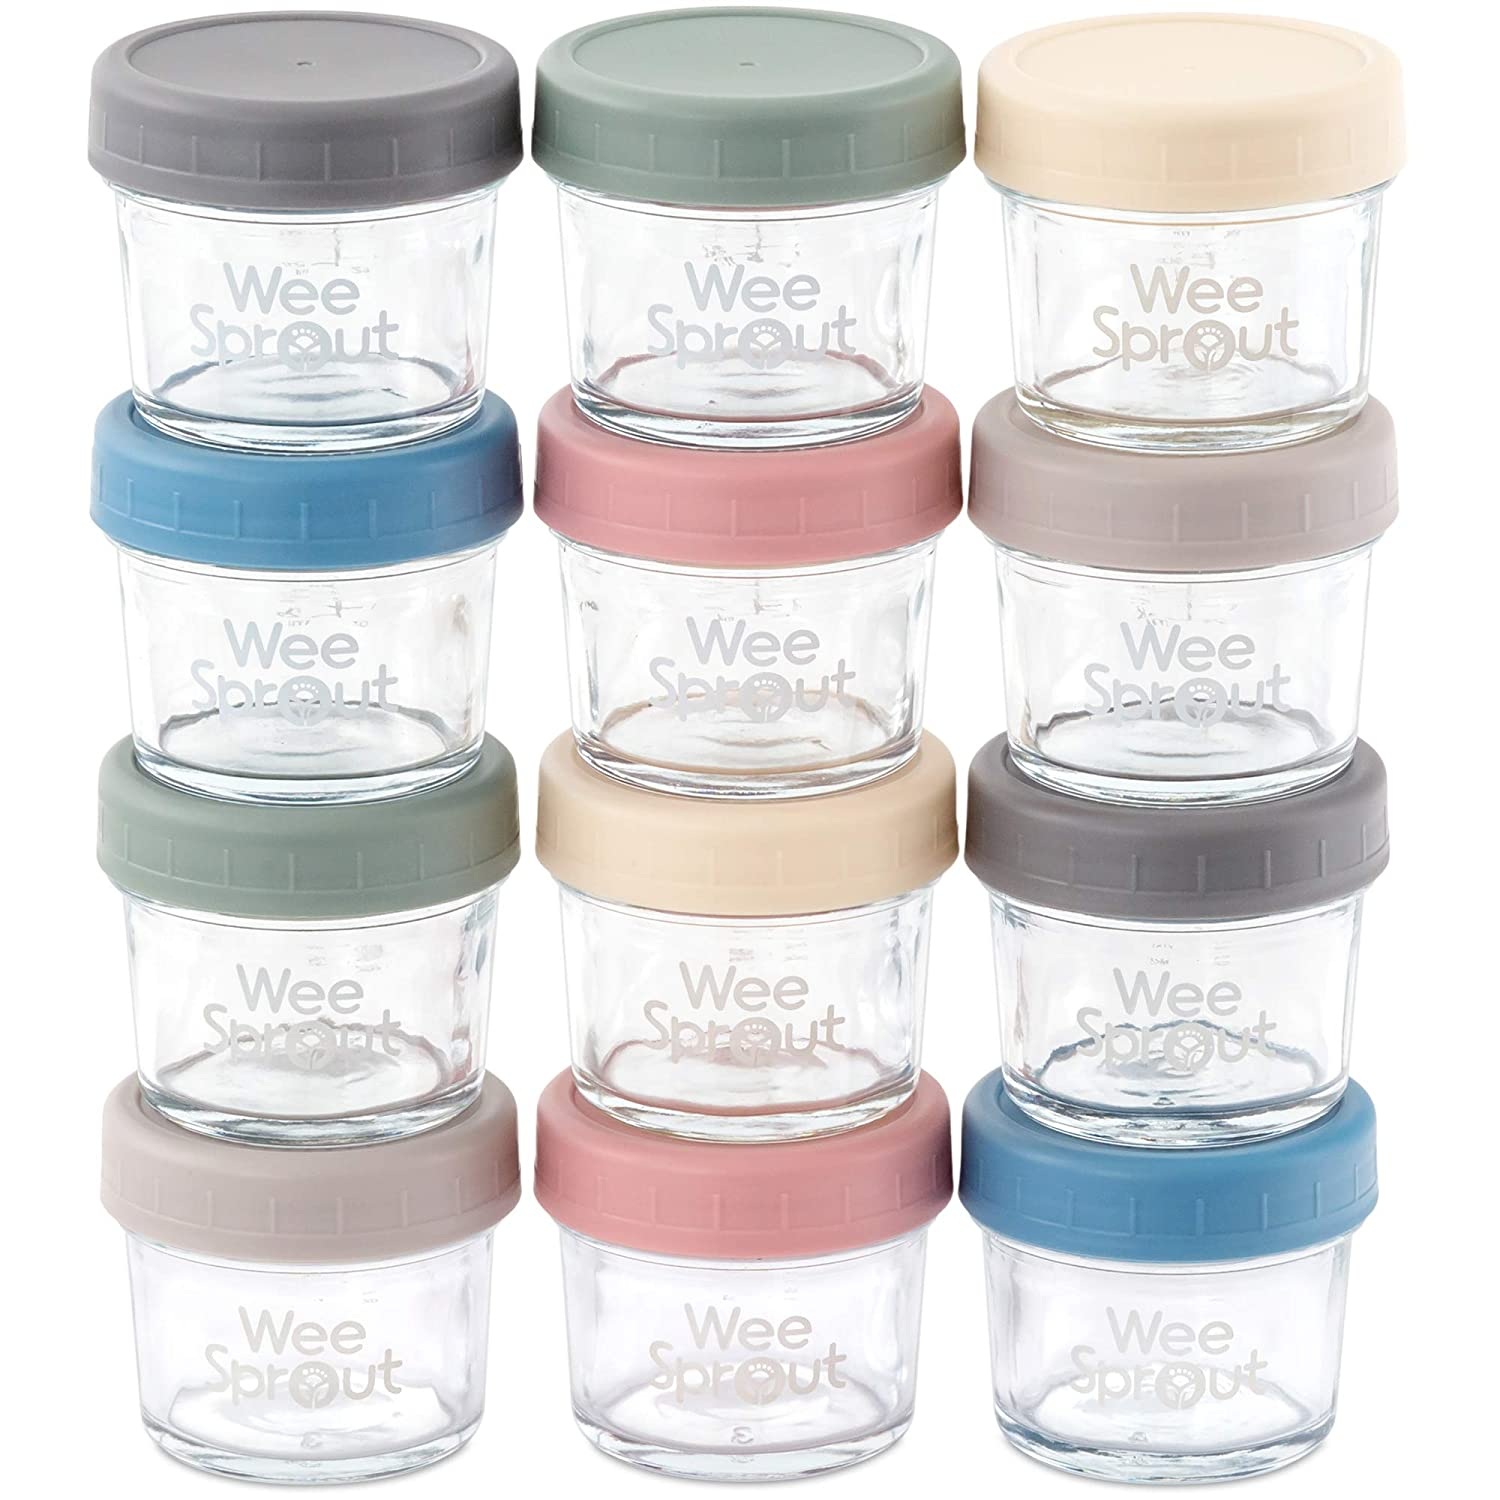 Glass Baby Food Storage Containers | Set of 12 | 4 oz Glass Baby Food Jars with Lids | Freezer Storage | Reusable Small Glass Baby Food Containers | Microwave/Dishwasher Friendly | for Infant & Babies